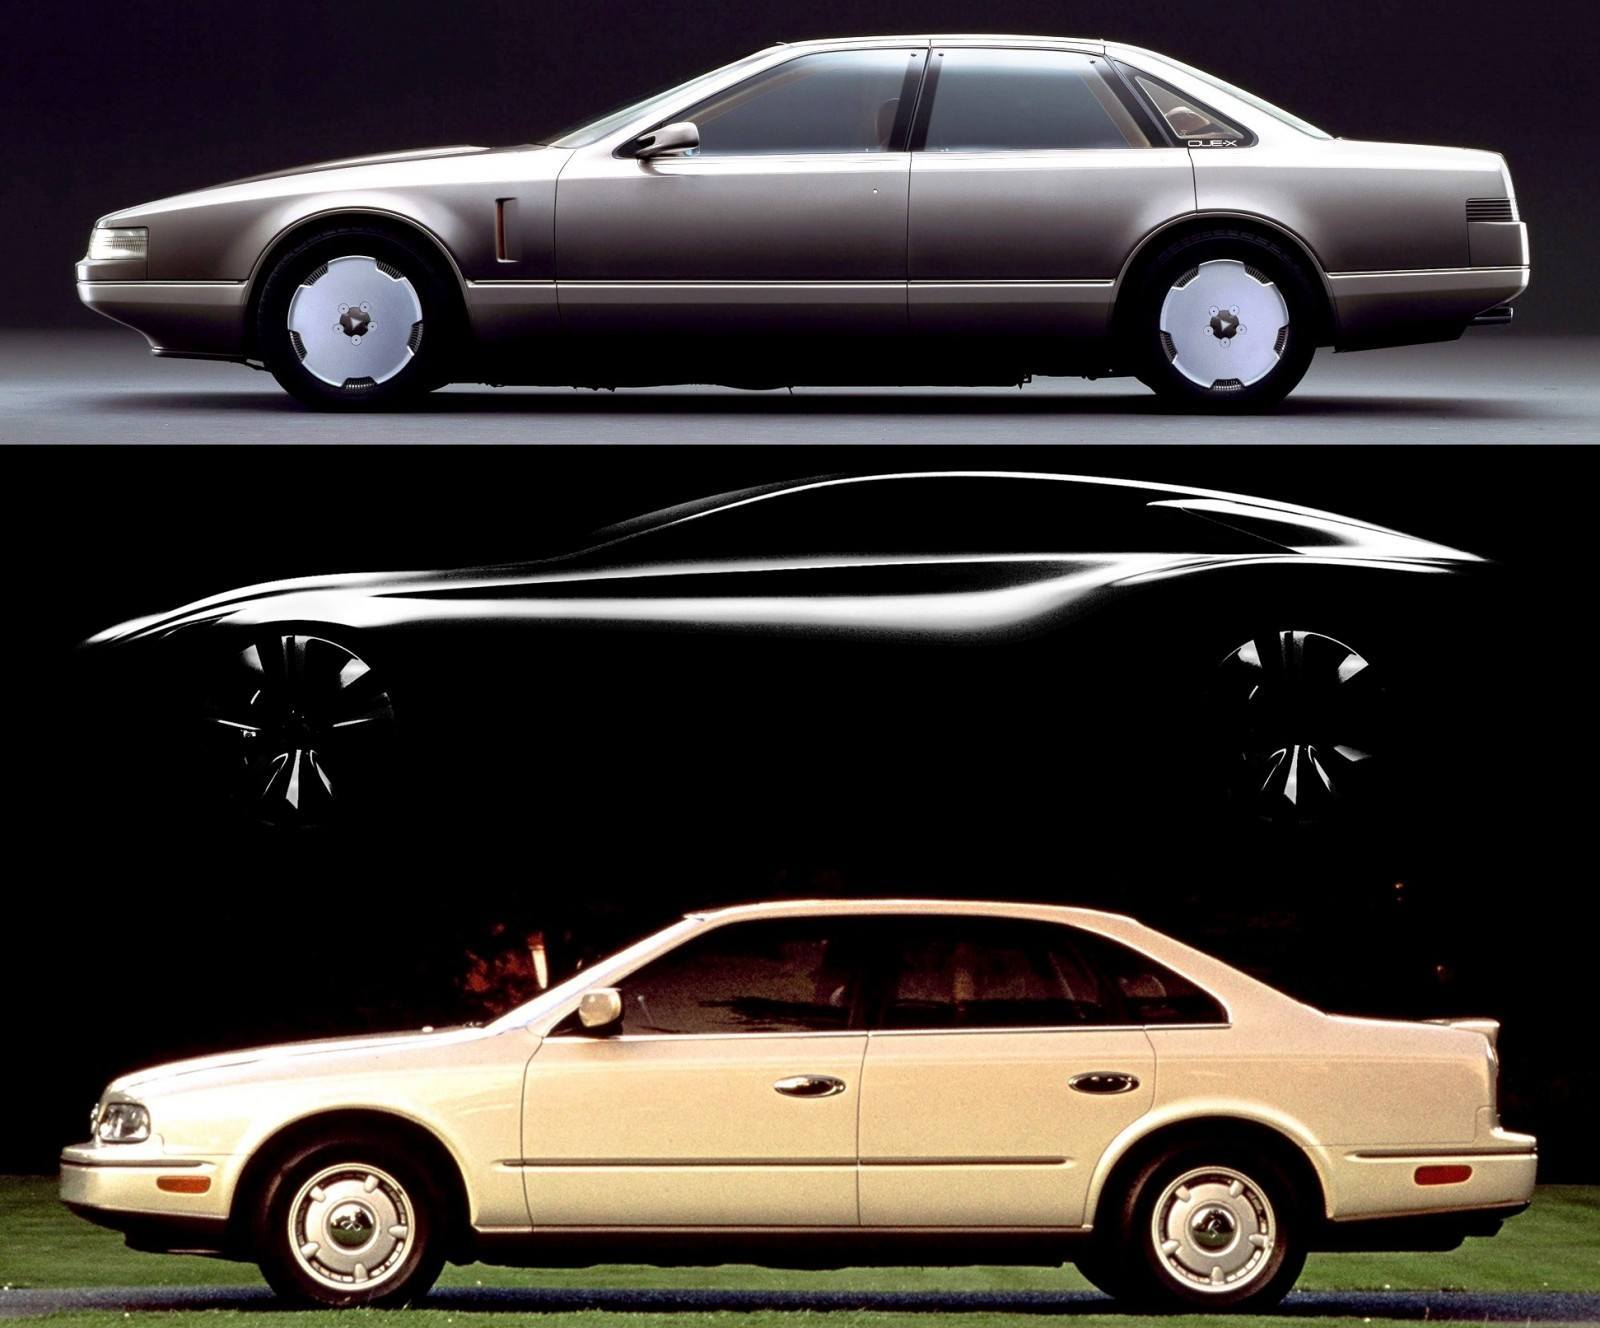 Concept Flashback - 1985 Nissan Cue-X Inspired Original Infiniti Q45 Flagship and Future Q80 222-vert534